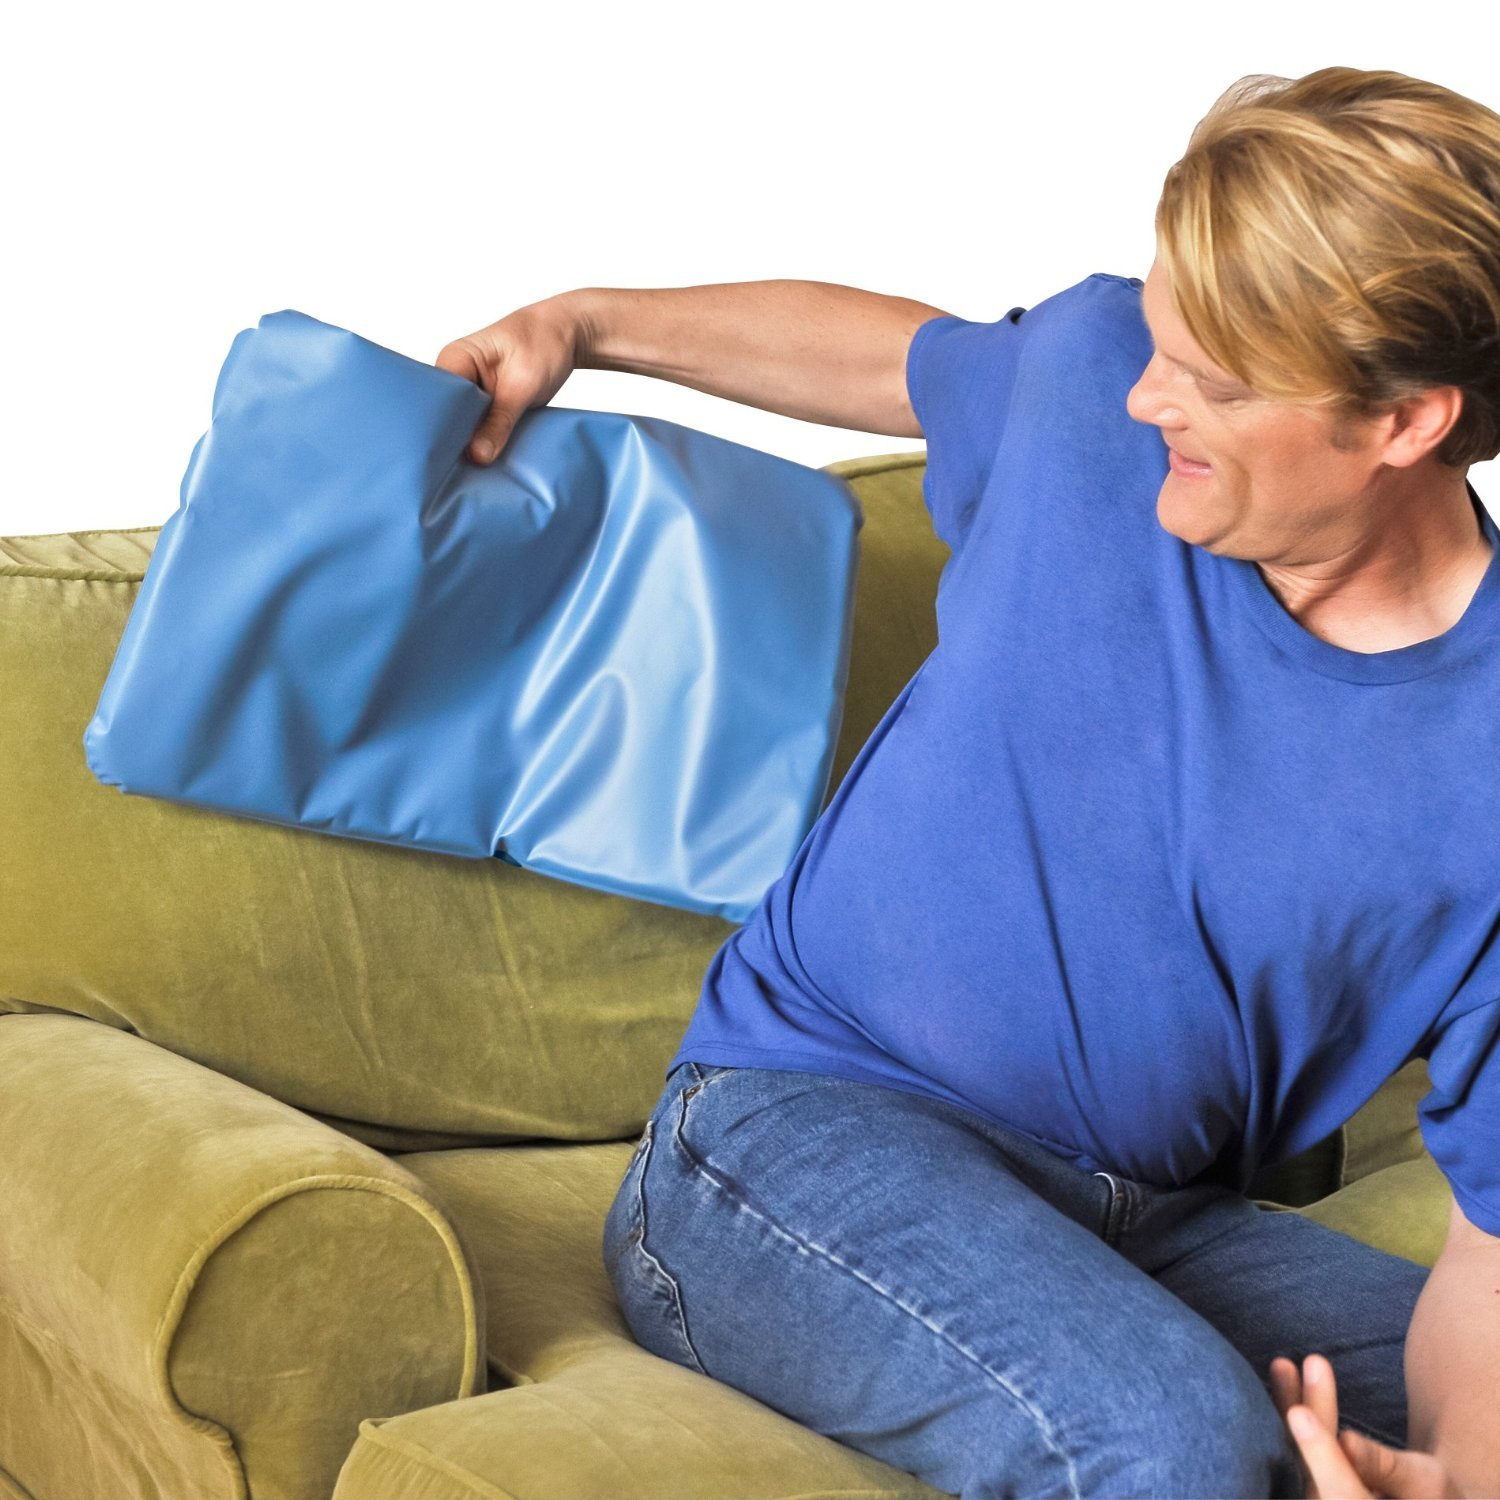 Chillow Cooling Pillow for a Relaxing, Restful Sleep by Hampton Direct